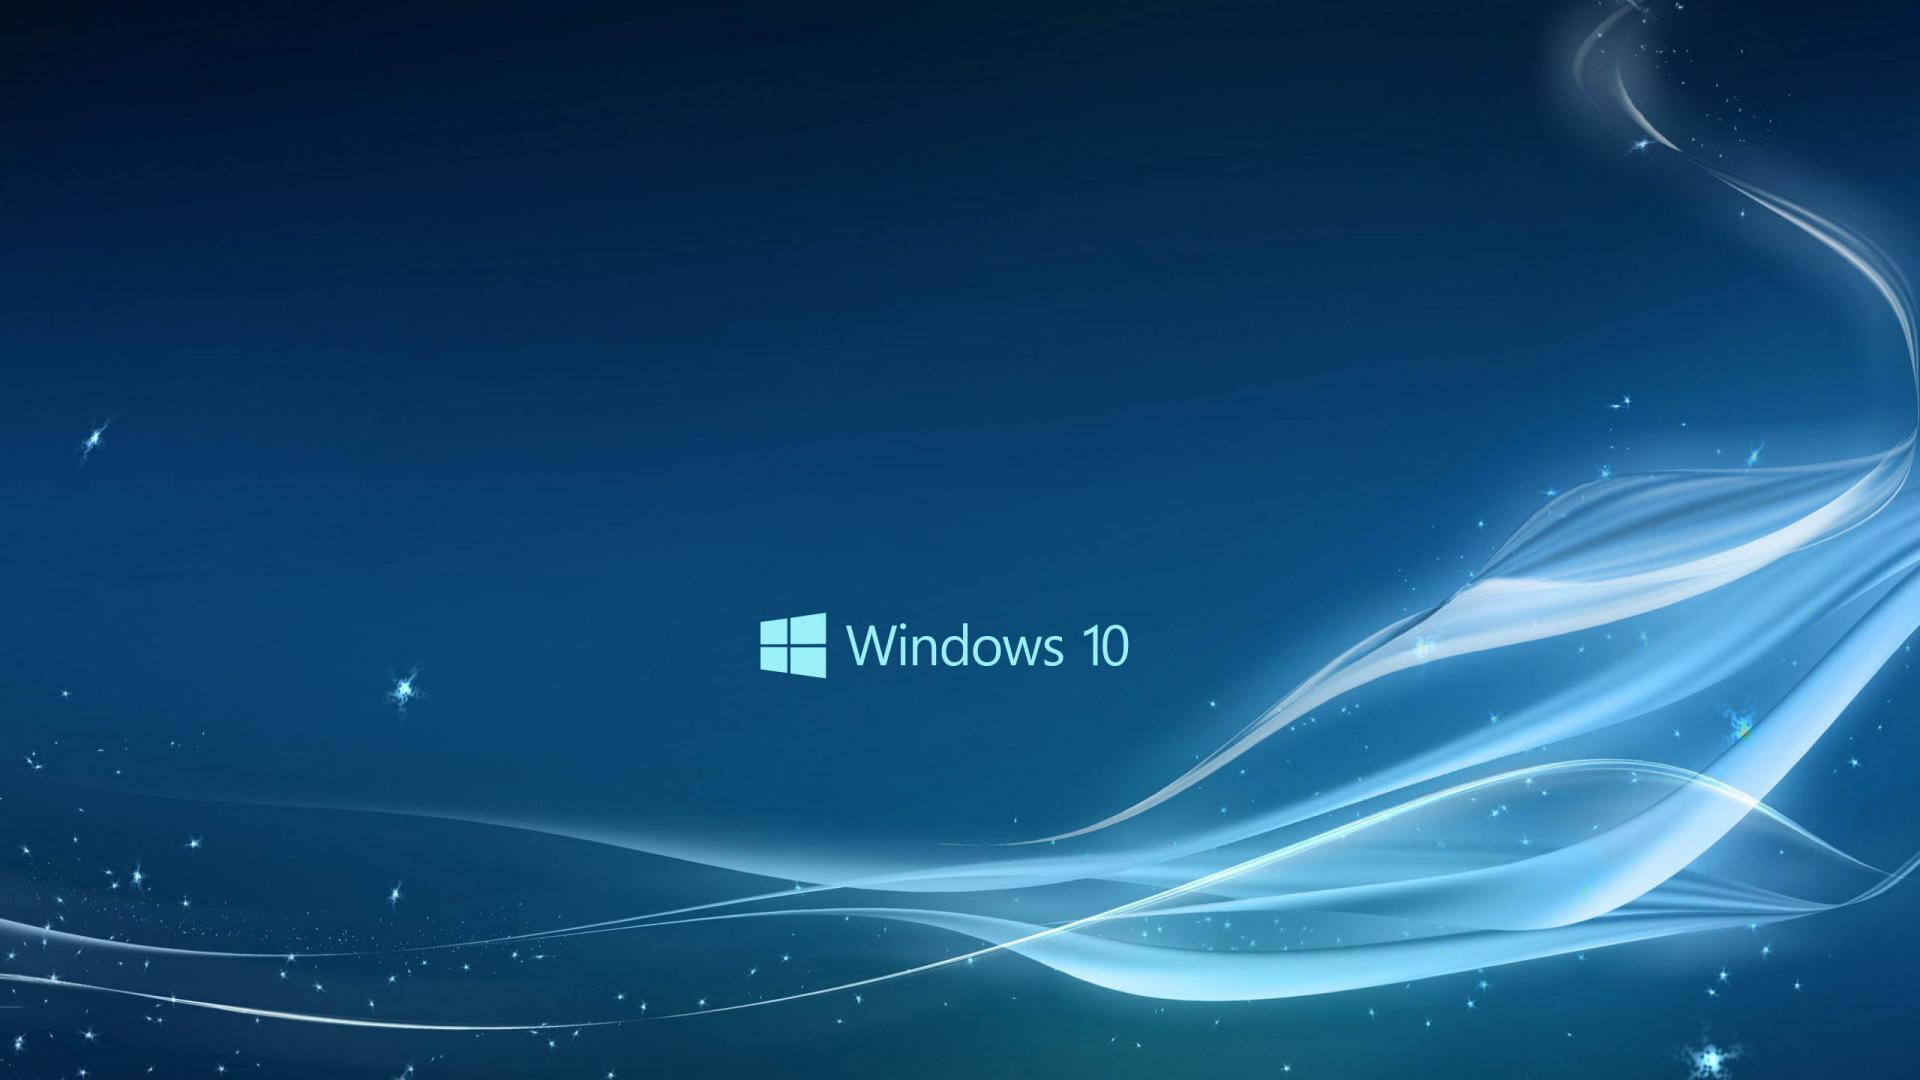 Installer Windows 10 depuis Windows 7 ou 8.1